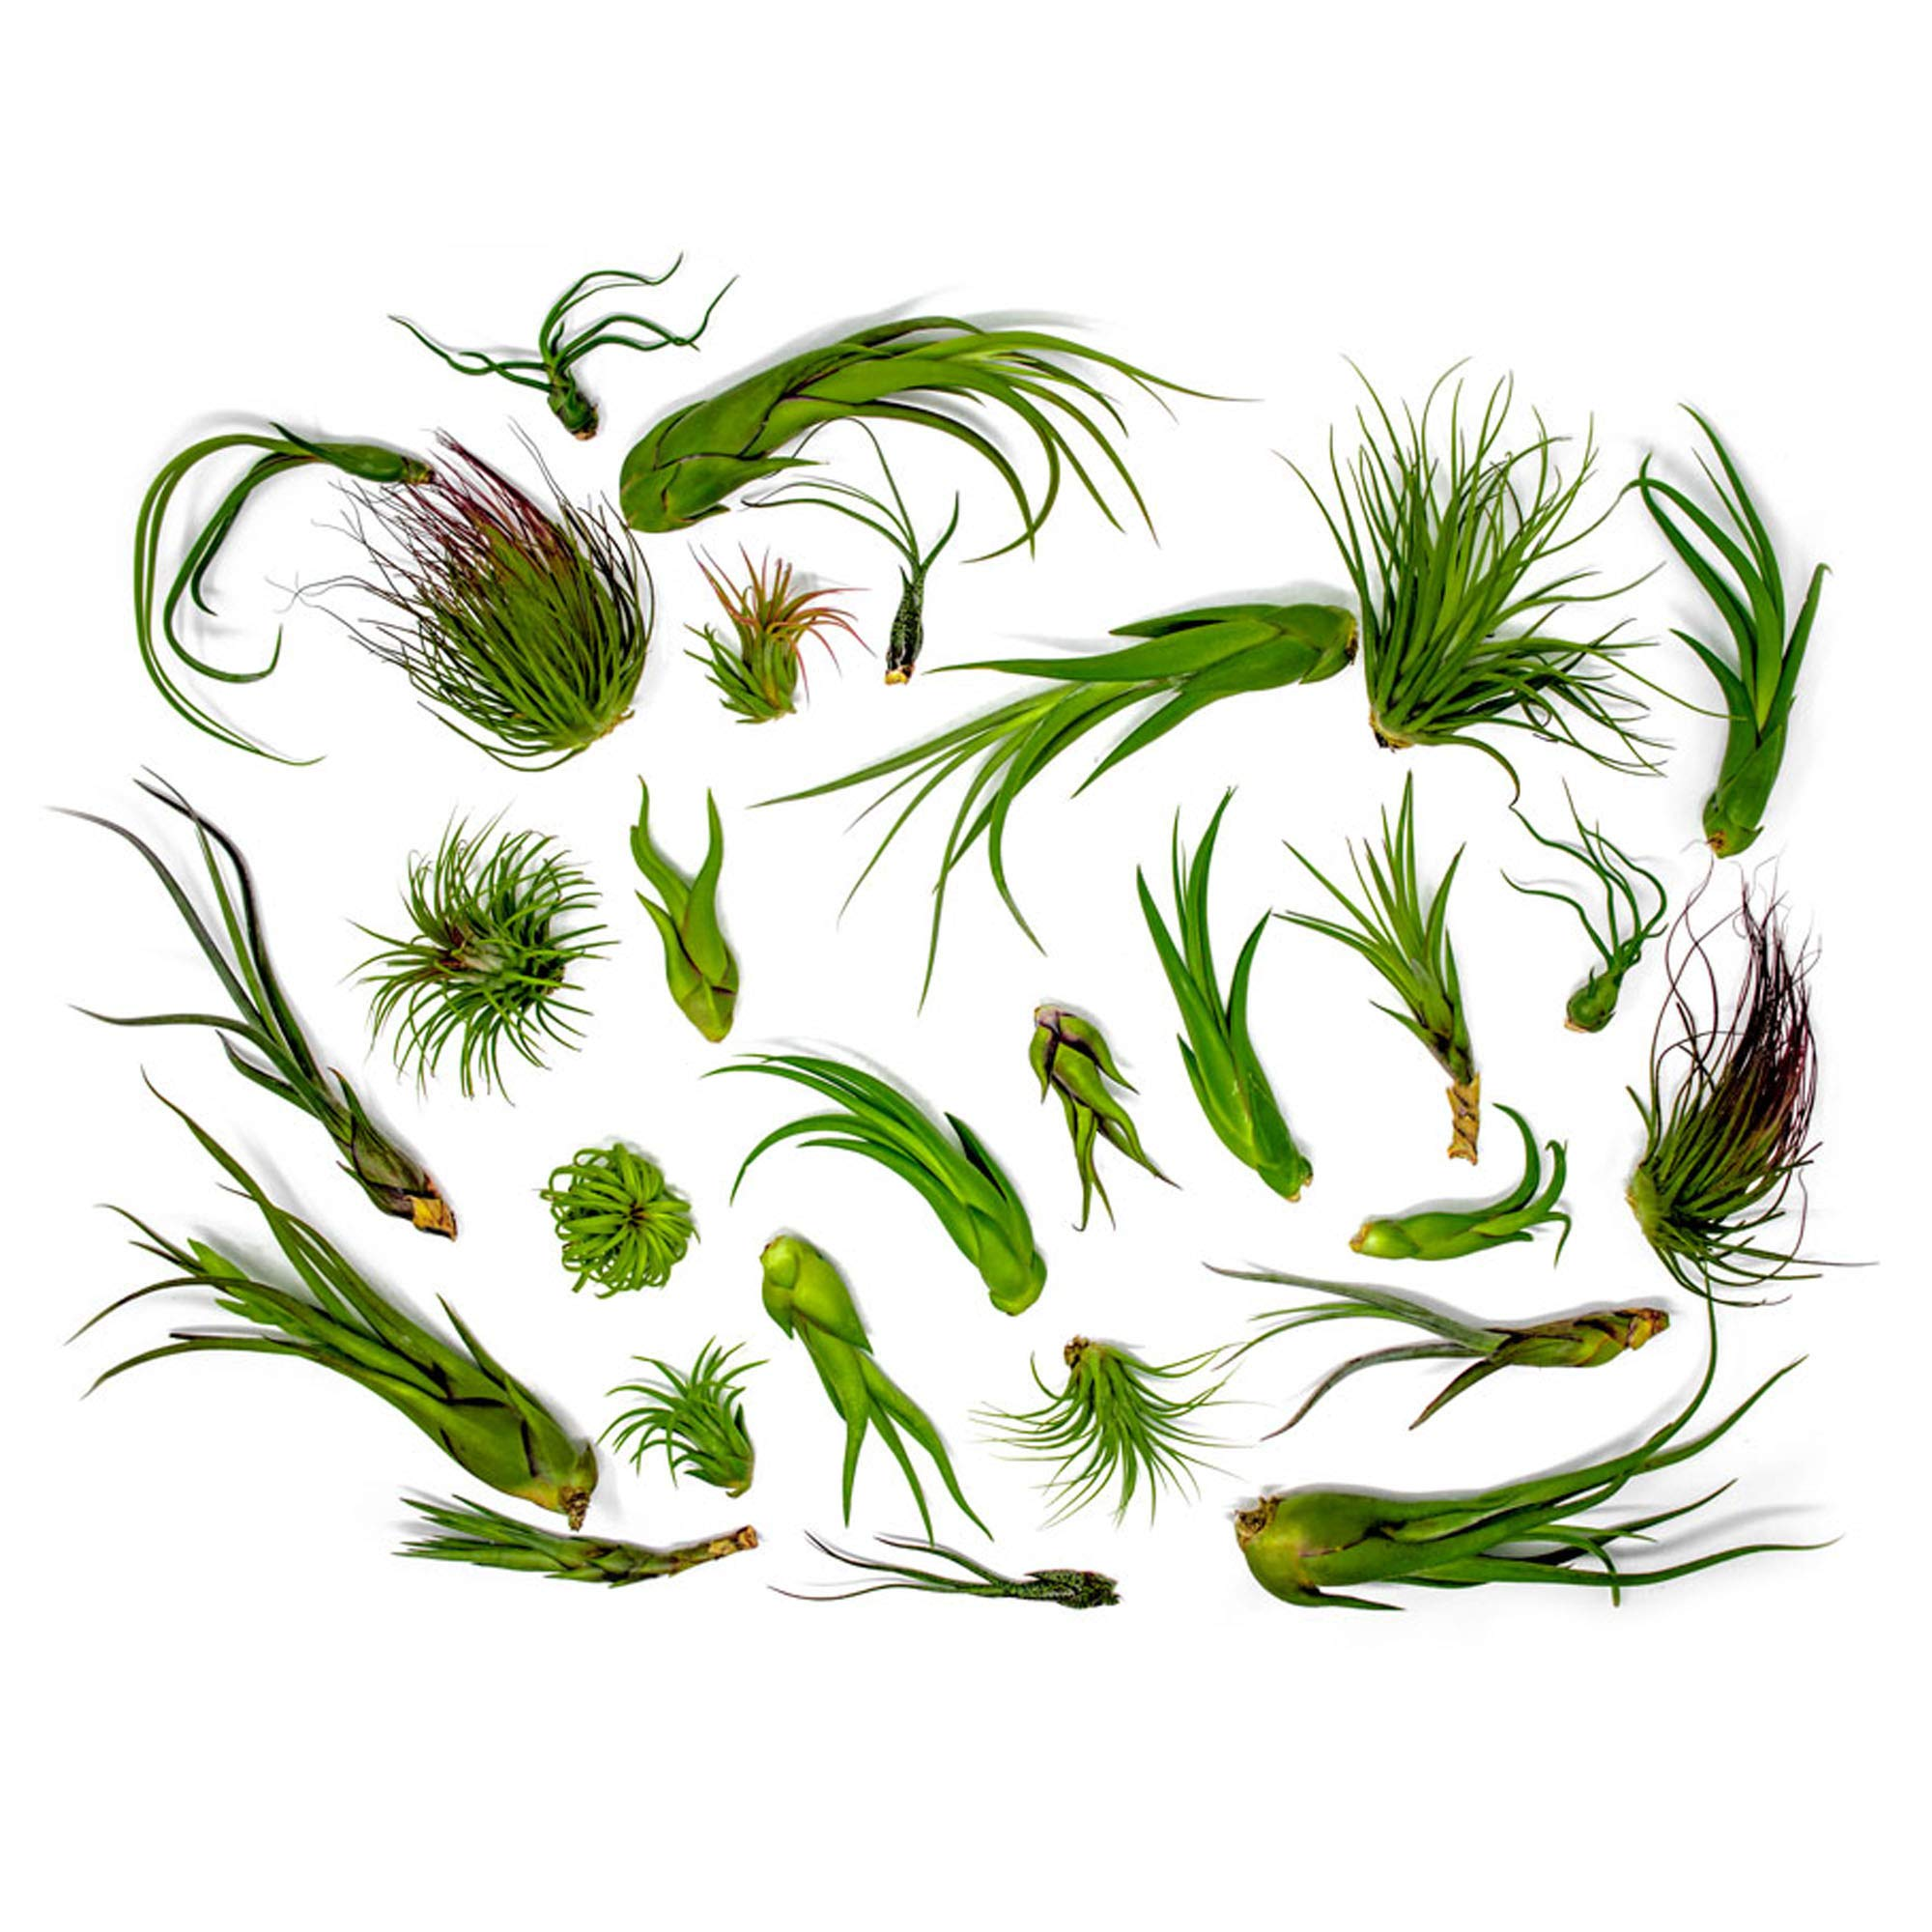 50 Air Plants Bulk | Live Tillandsia Plant Lot | Bulk Wedding Favors | DIY Party Gift | Air Succulents Set | Box Wholesale Lots by Plants for Pets by Plants for Pets